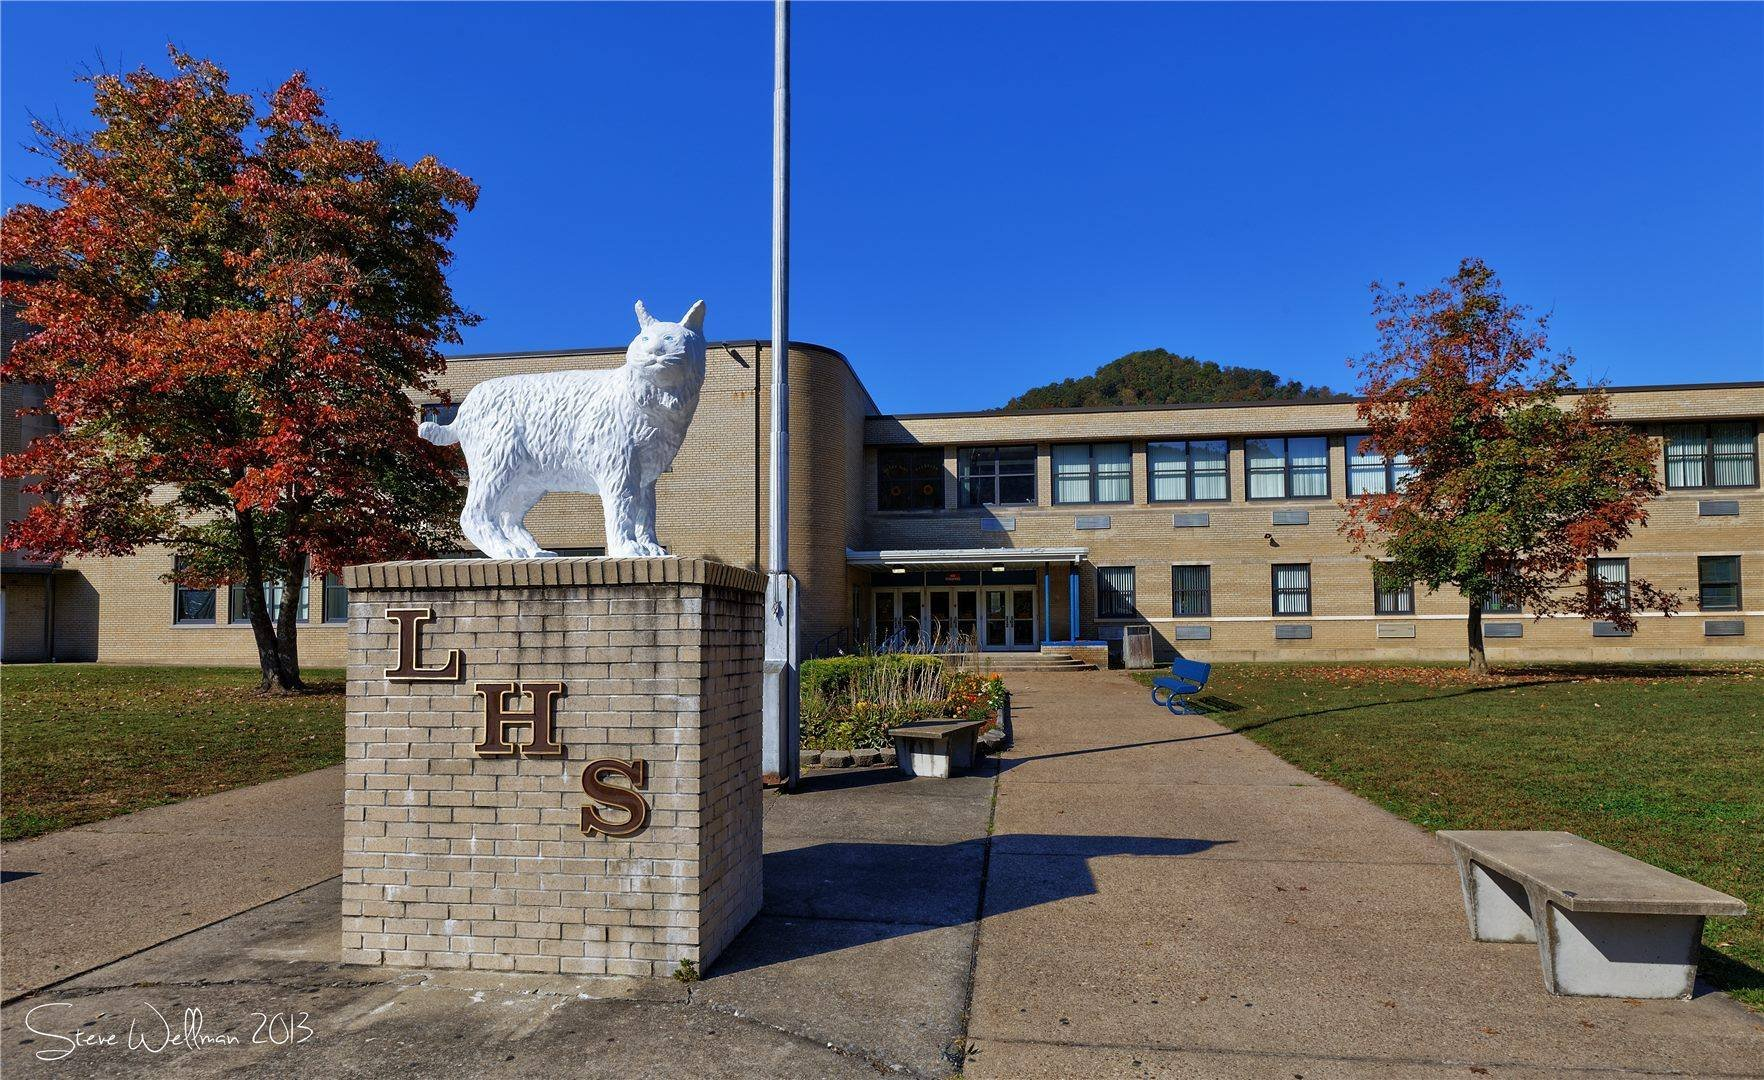 In front of the school, sits the statue of the wildcat. The wildcat serves as the mascot of Logan High School. The lettering underneath shows the colors of the school - blue and gold. 